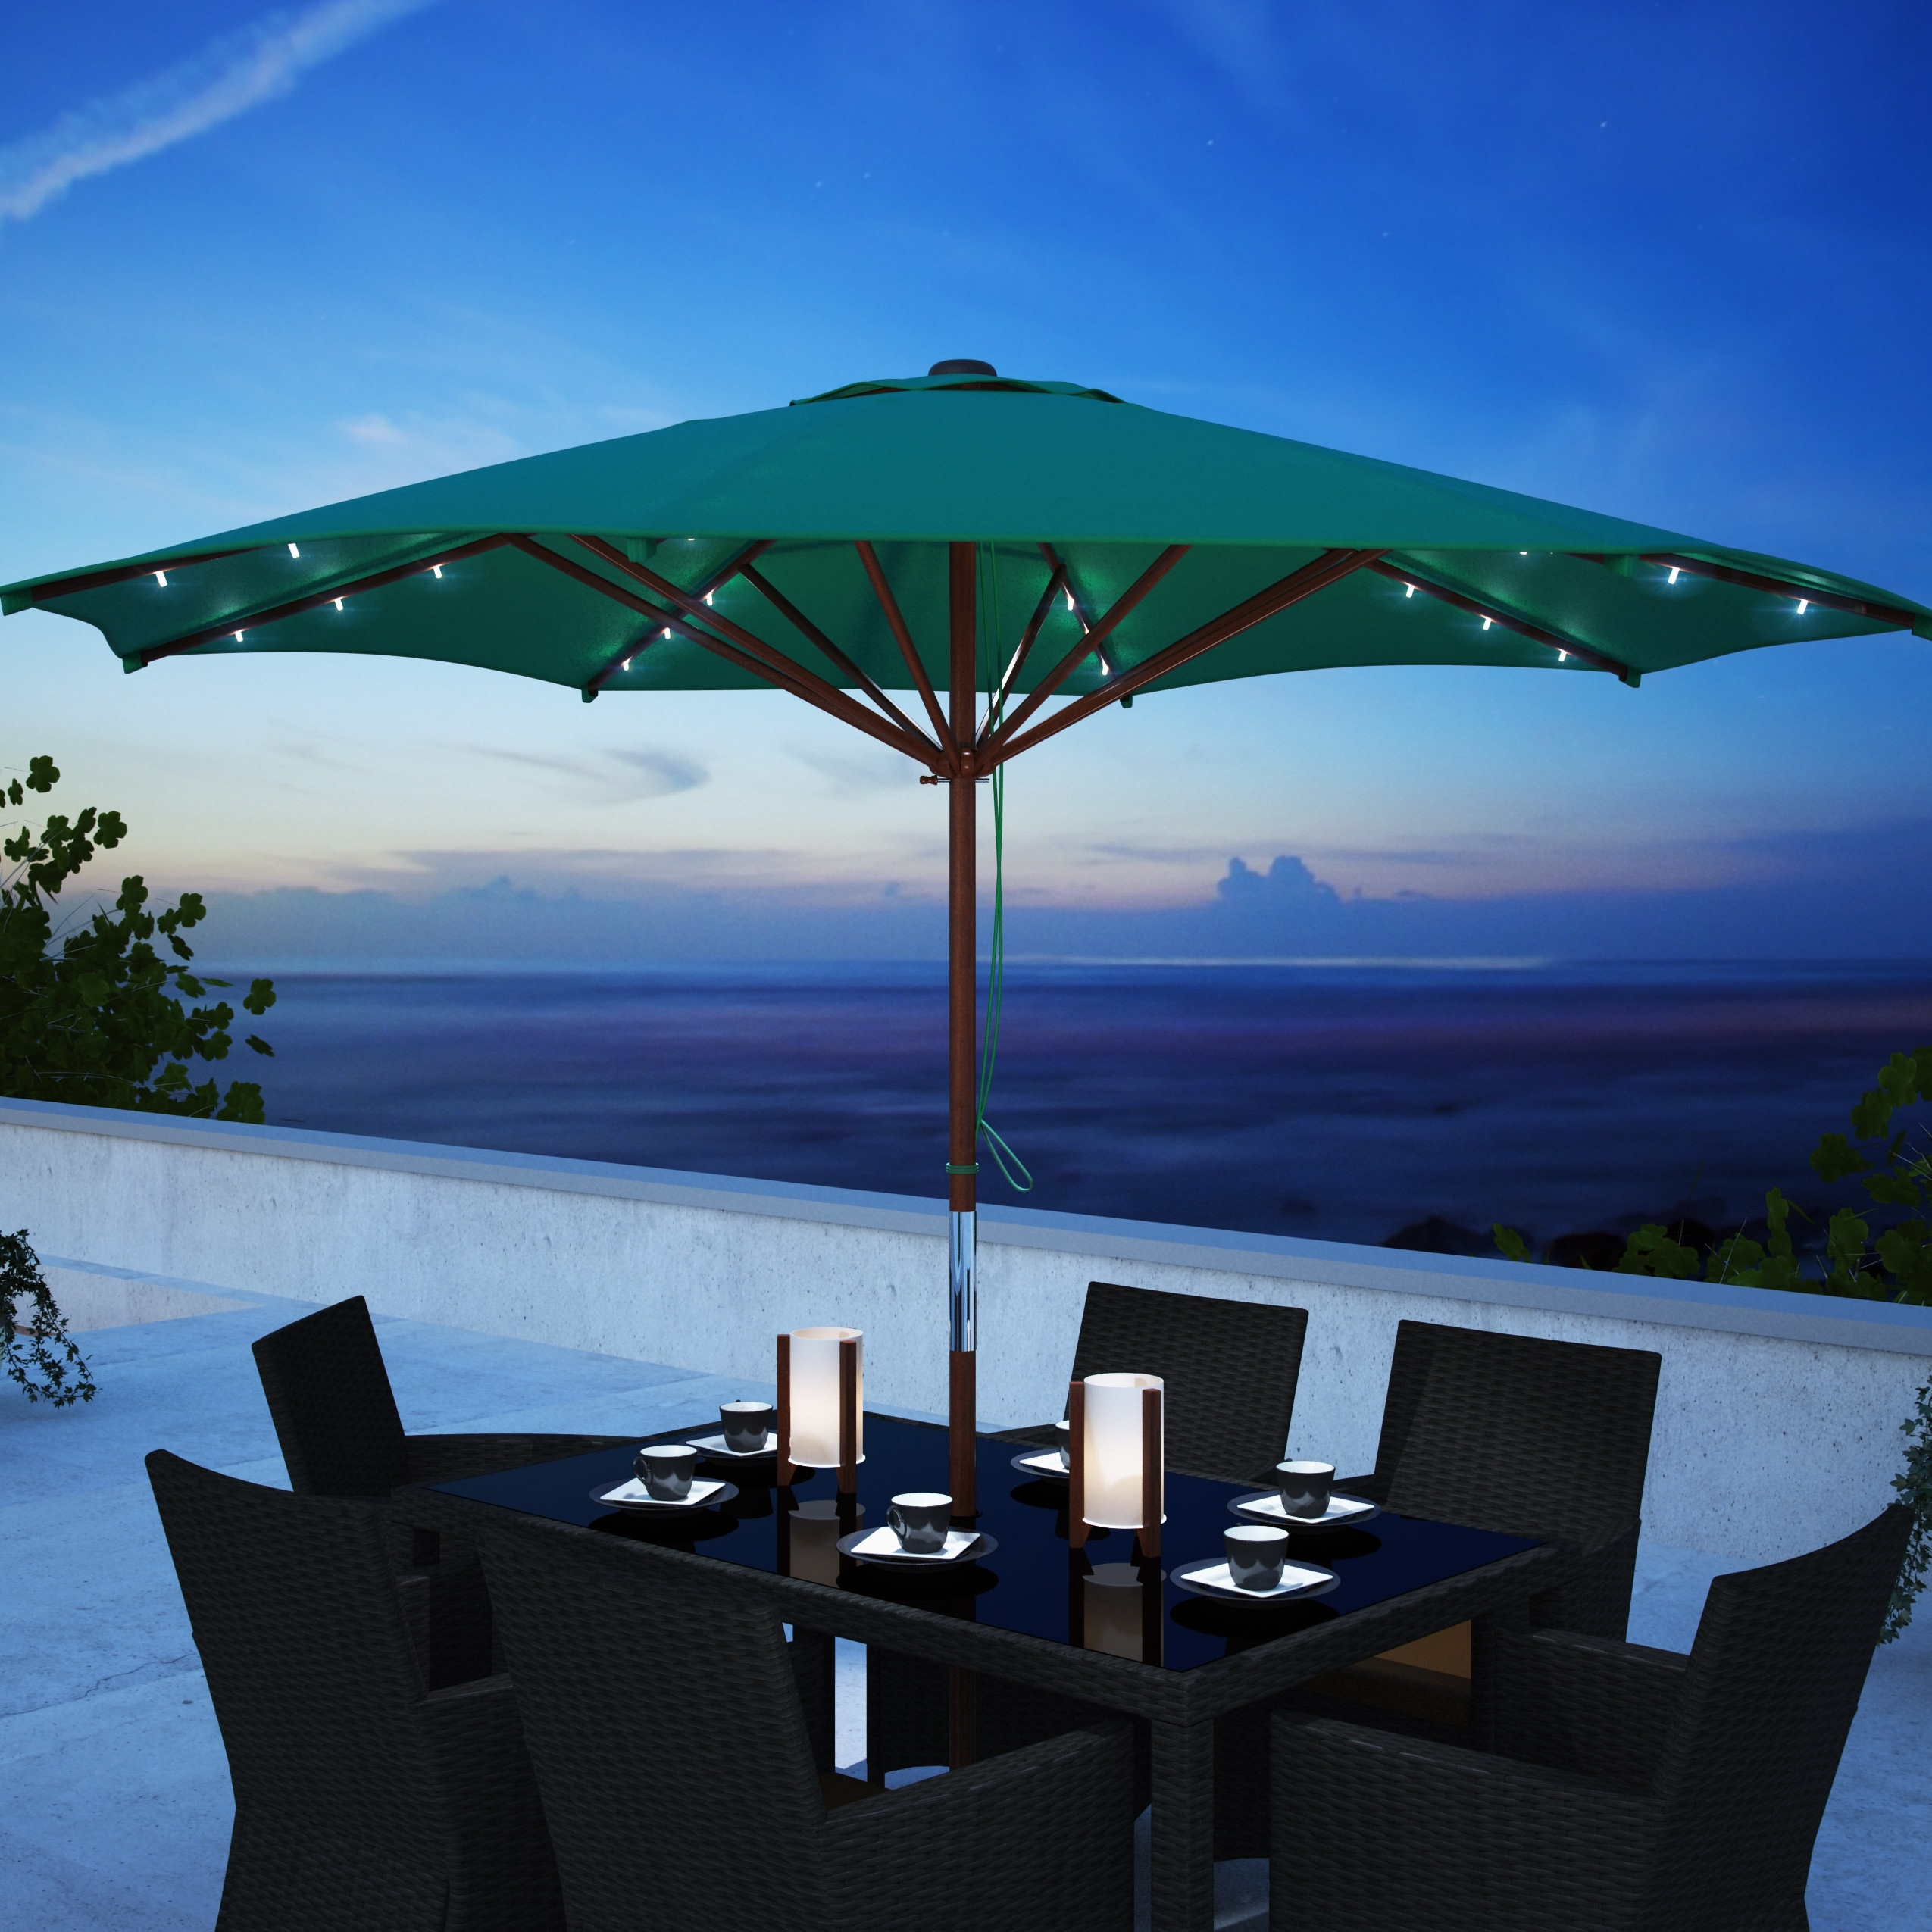 Patio Umbrellas With Led Lights With Regard To Most Popular Corliving Patio Umbrella With Solar Power Led Lights Taupe (Gallery 19 of 20)